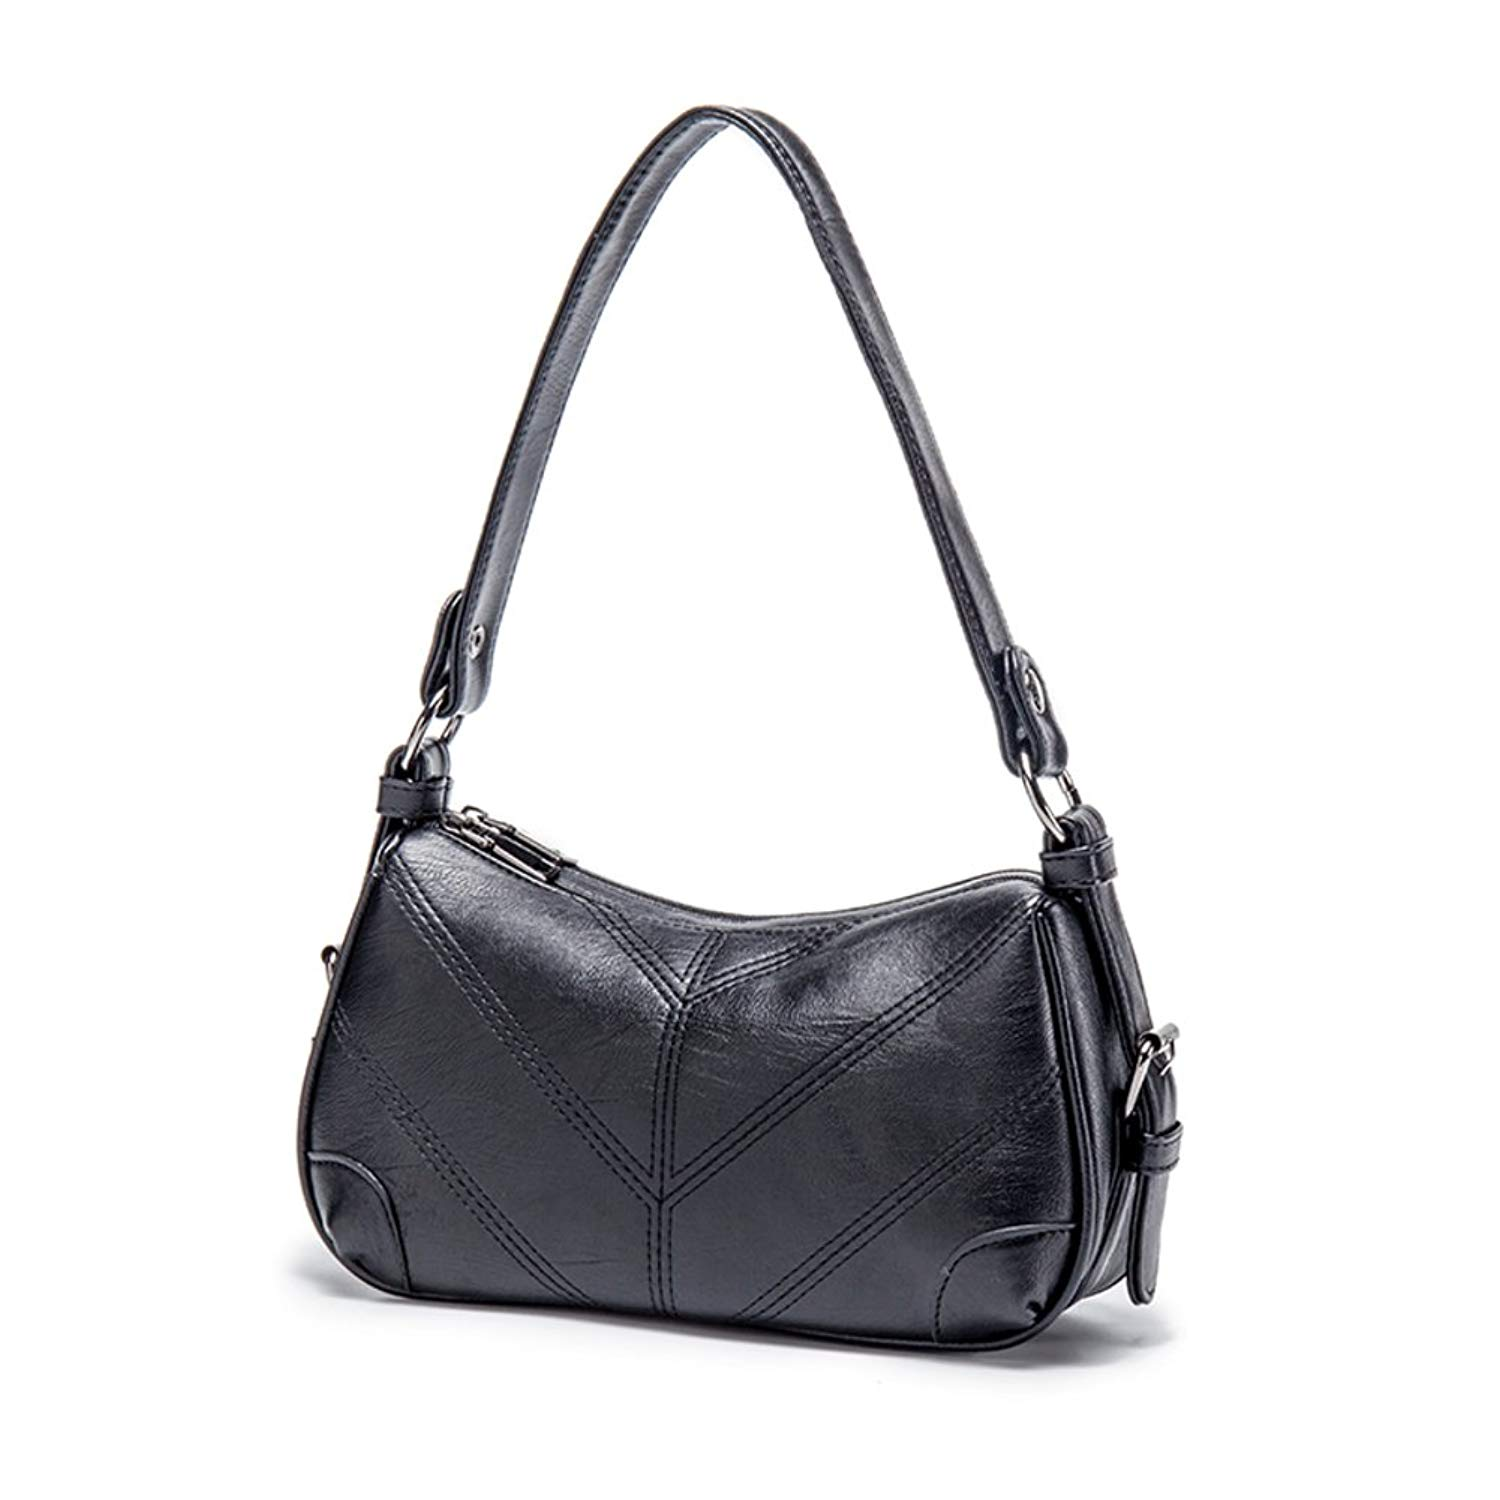 0e2359a87d93 Cheap Teen Bags, find Teen Bags deals on line at Alibaba.com